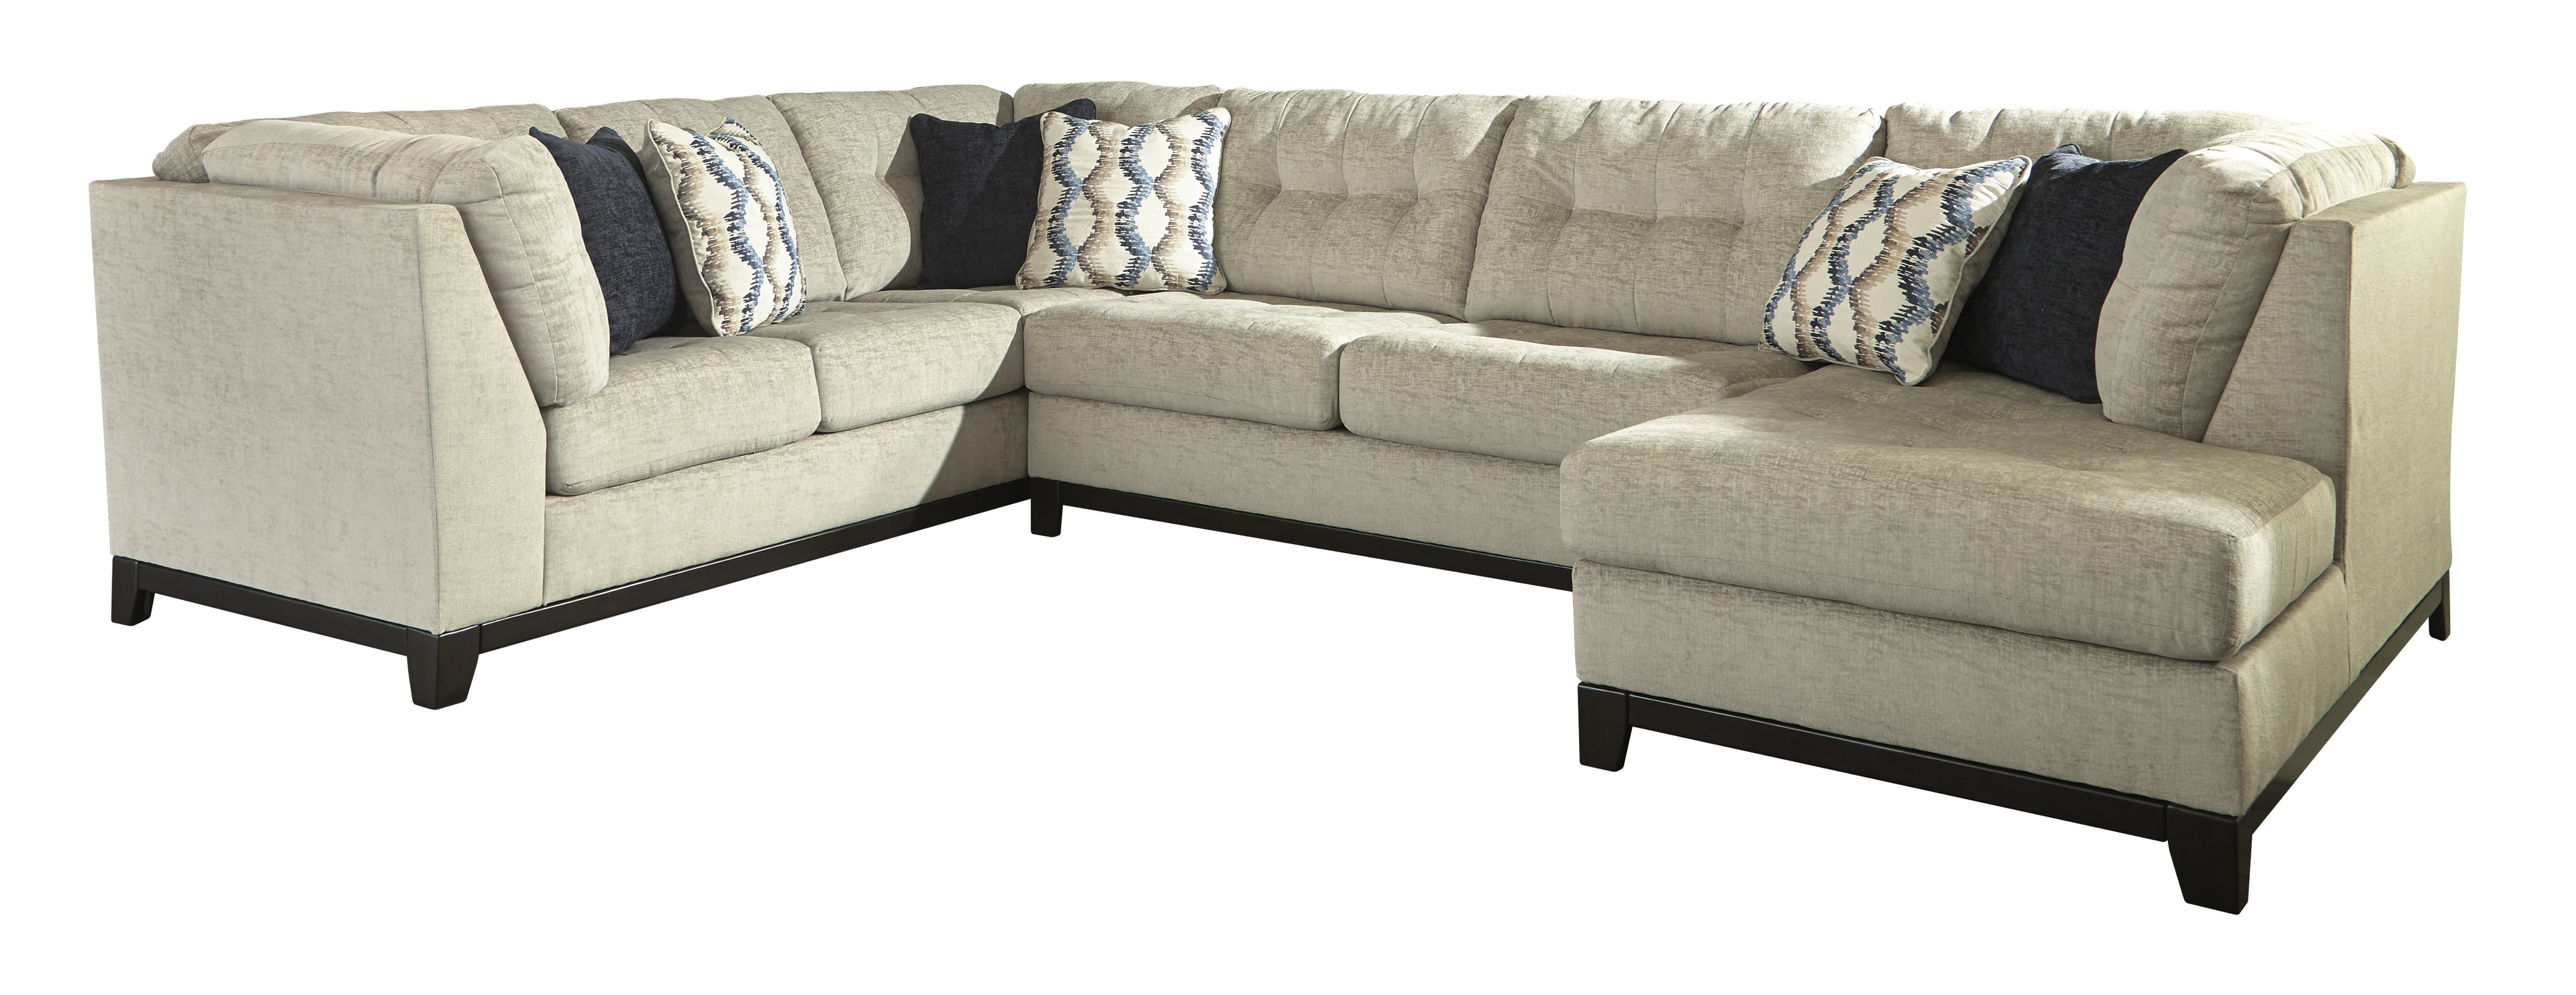 Beckendorf Chalk Left Facing Extended Sofa Sectional,Benchcraft